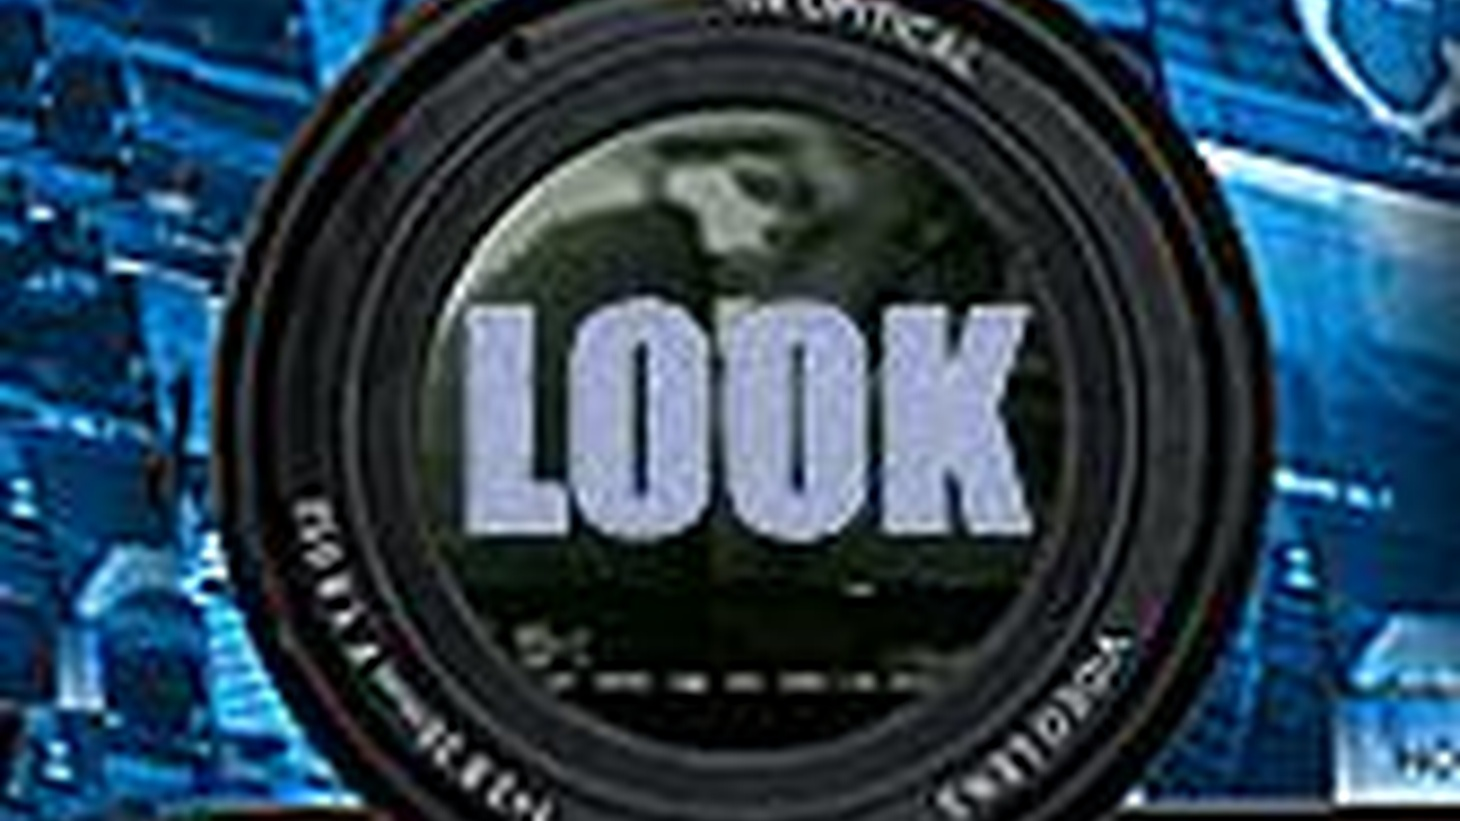 A forthcoming film called Look is shot entirely from the perspective of surveillance cameras. Although the film is fiction, real life surveillance pervades our lives, every day and every where. Privacy rights versus security is the topic when Sharon Waxman hosts The Politics of Culture.